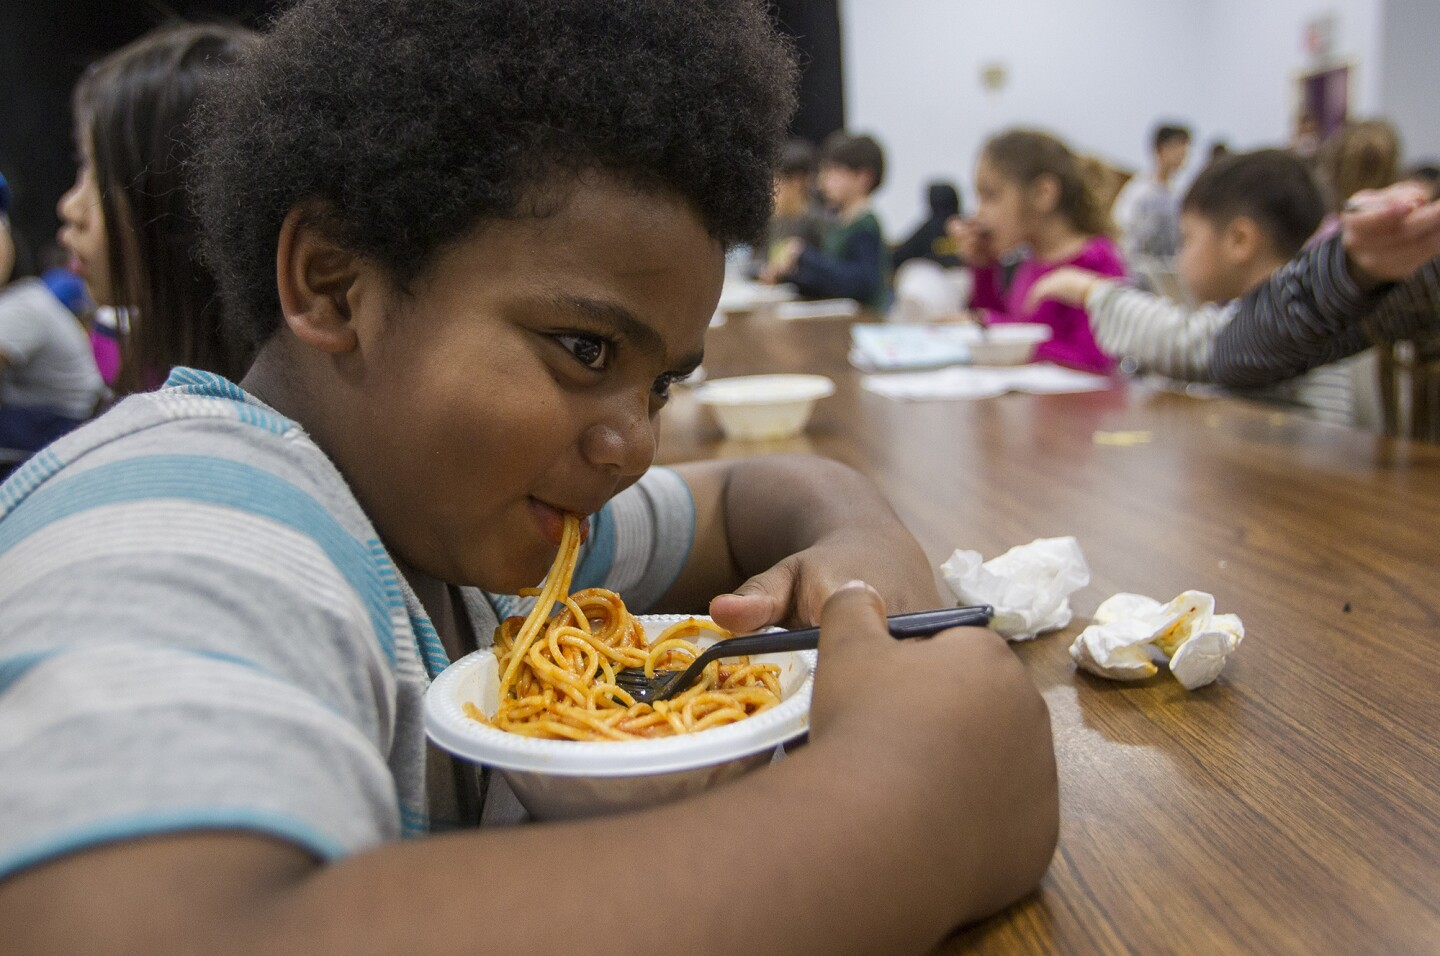 Jeremia Williams, 7, eat a pasta dinner prepared by chef Bruno Serato, of Caterina's Club at the Harbor Boys & Girls Club in Irvine on Wednesday.